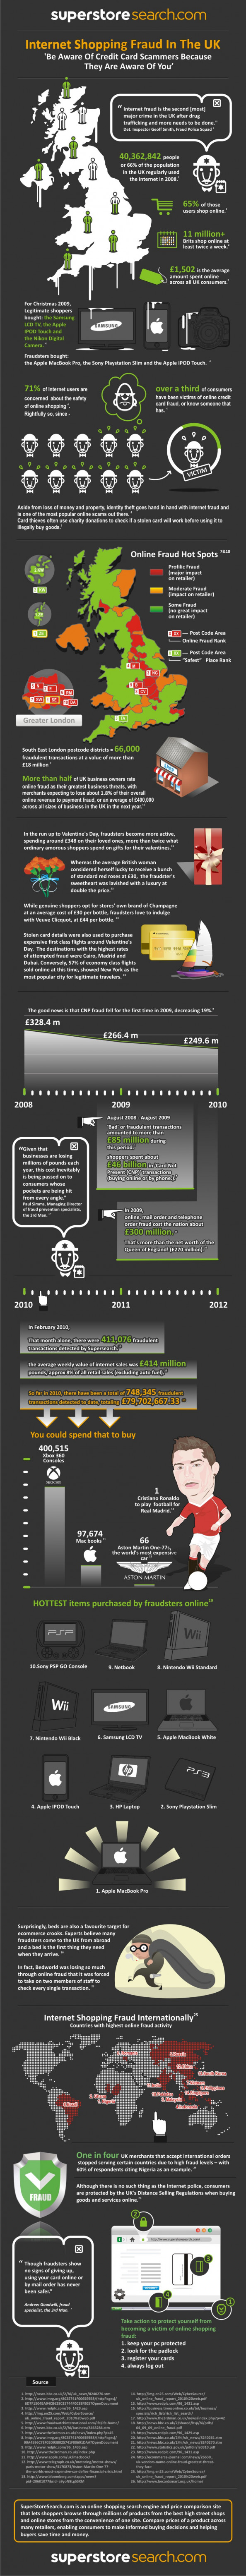 Internet Shopping Fraud in the UK Infographic